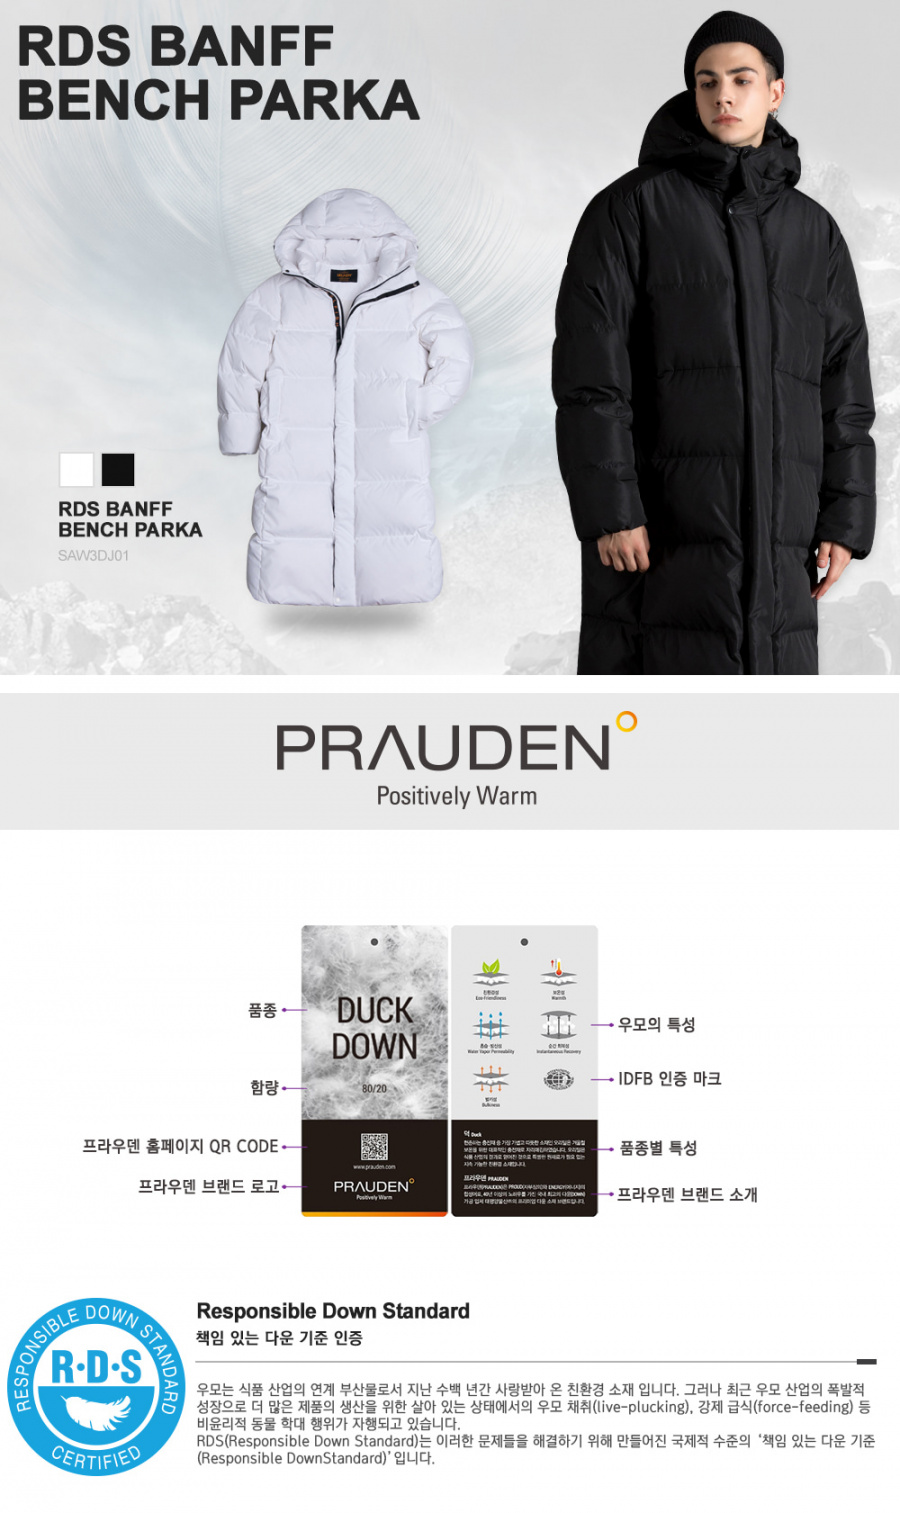 셀피쉬(SELFISH) RDS BANFF BENCH PARKA (SAW3DJ01) (WHITE)